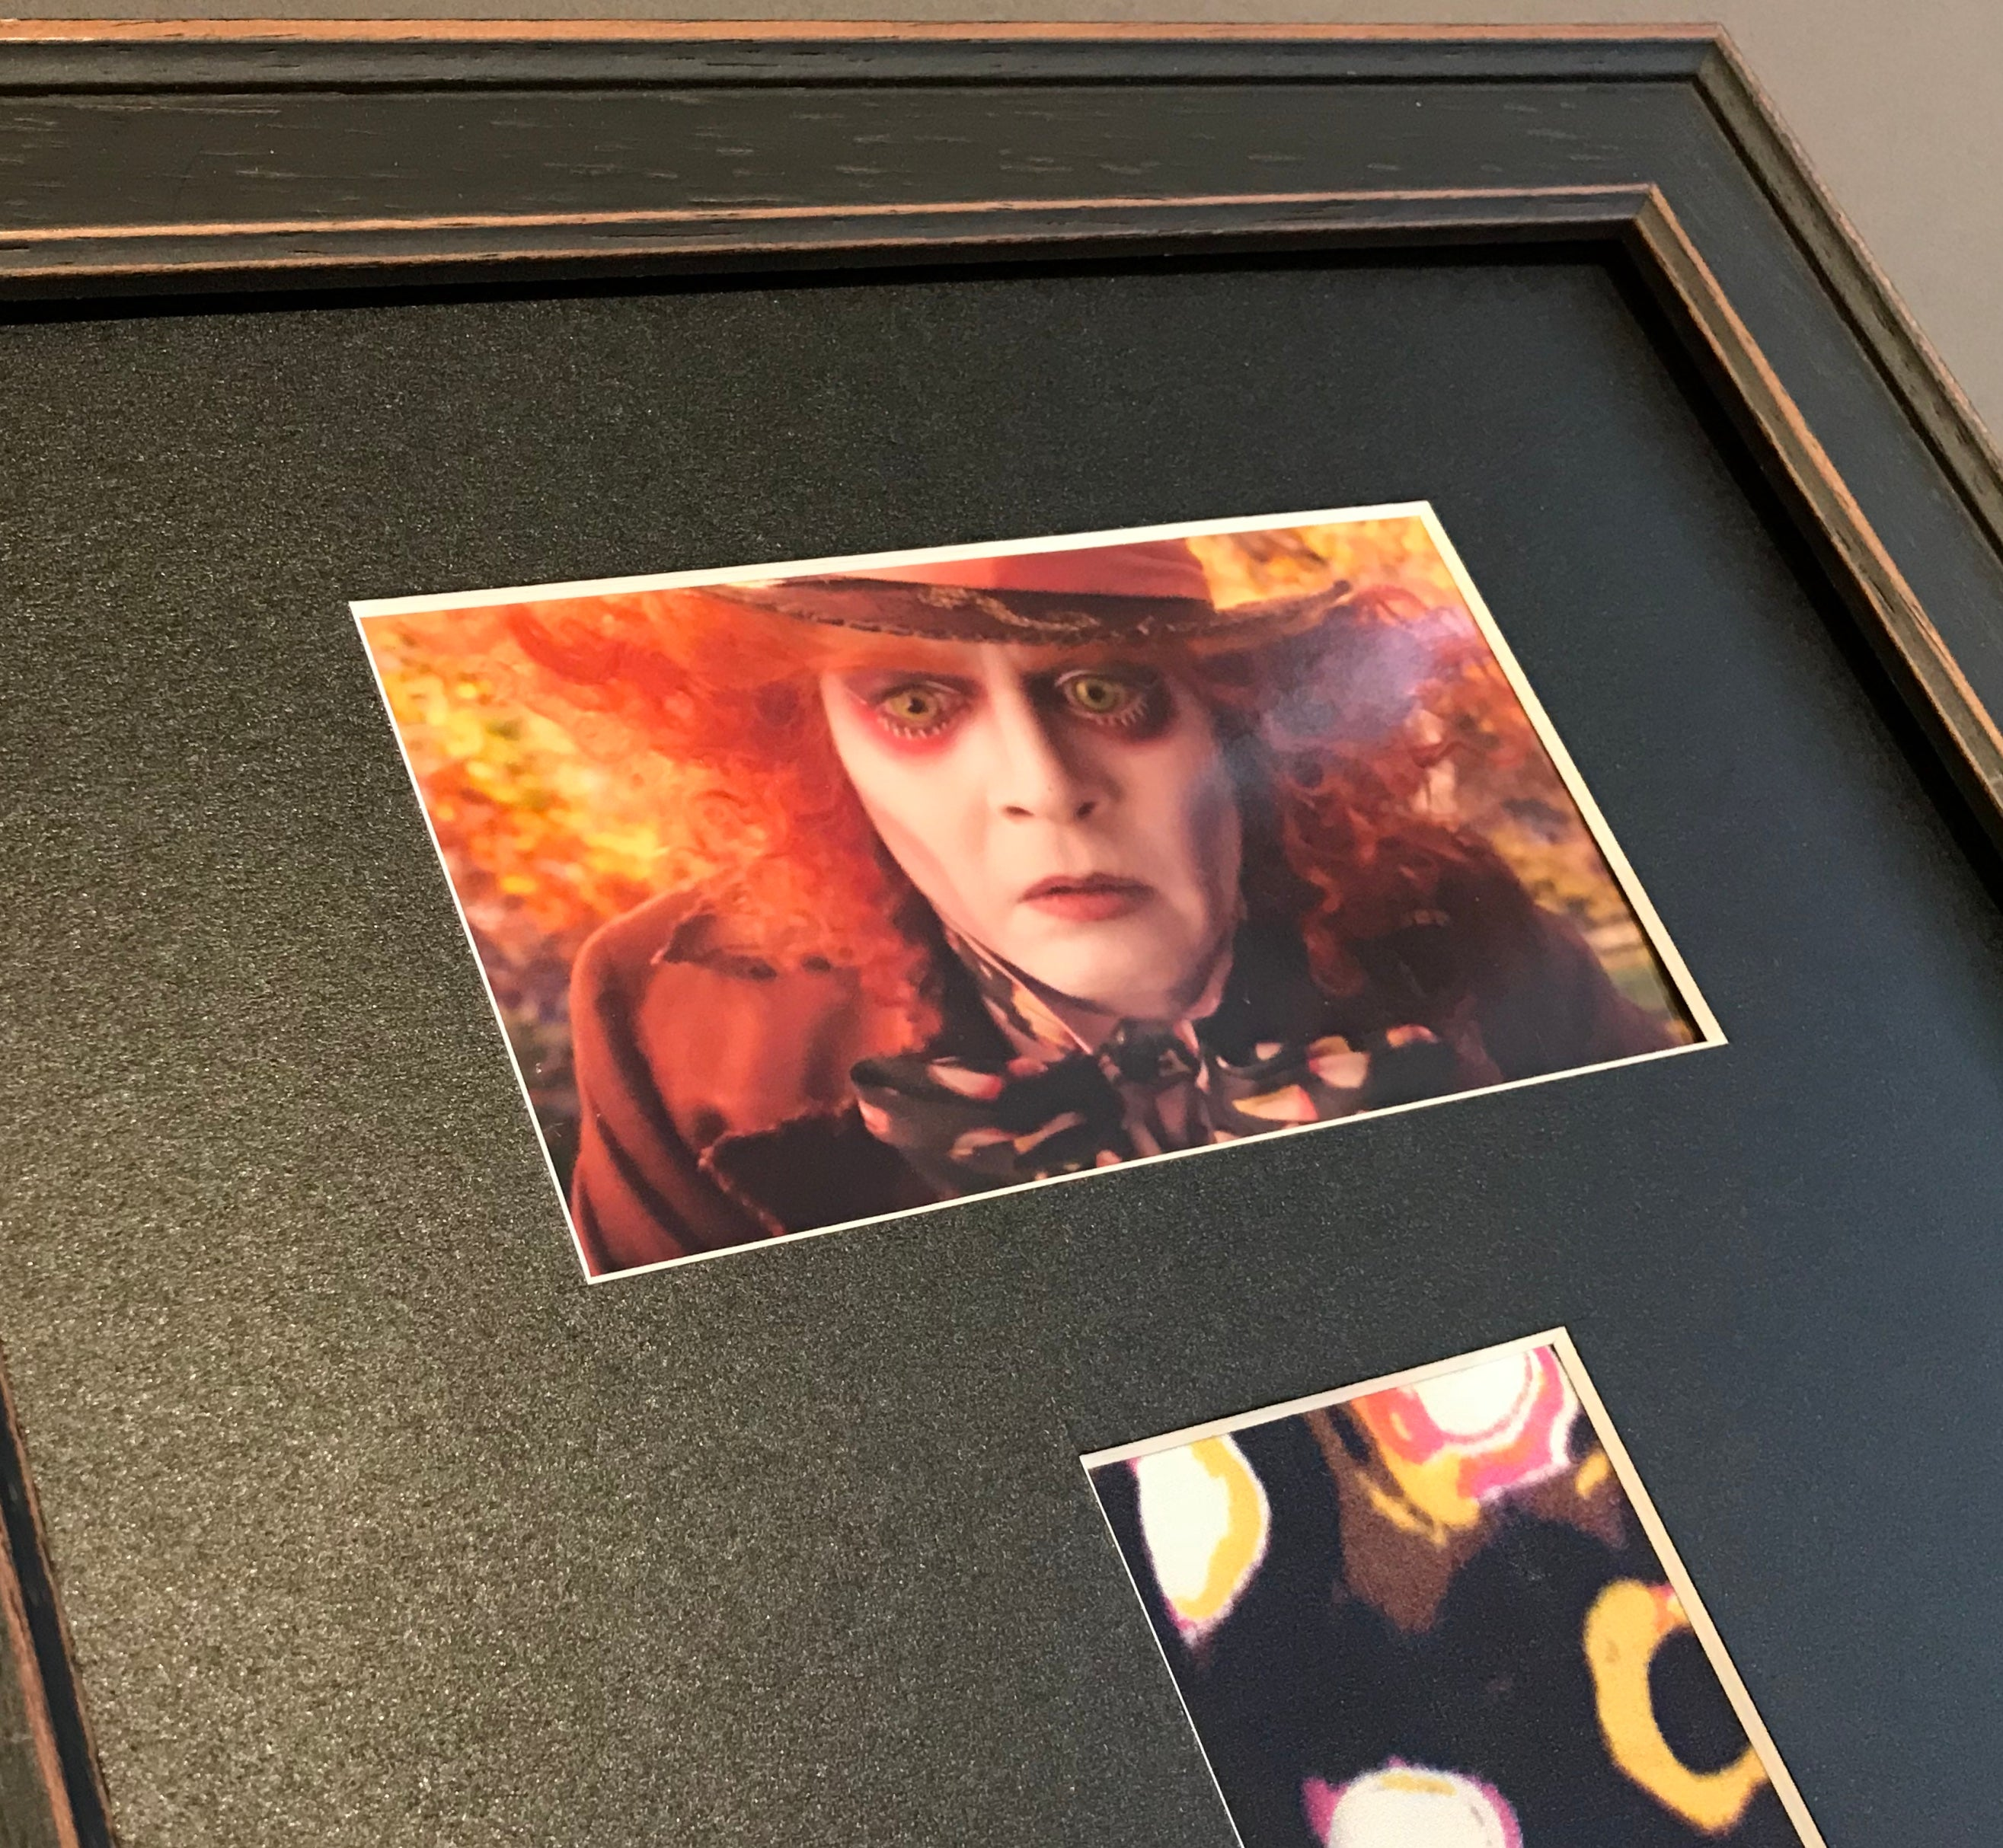 Alice through the Looking Glass (2016) - A Framed Mad Hatter (Johnny Depp) Costume Swatch